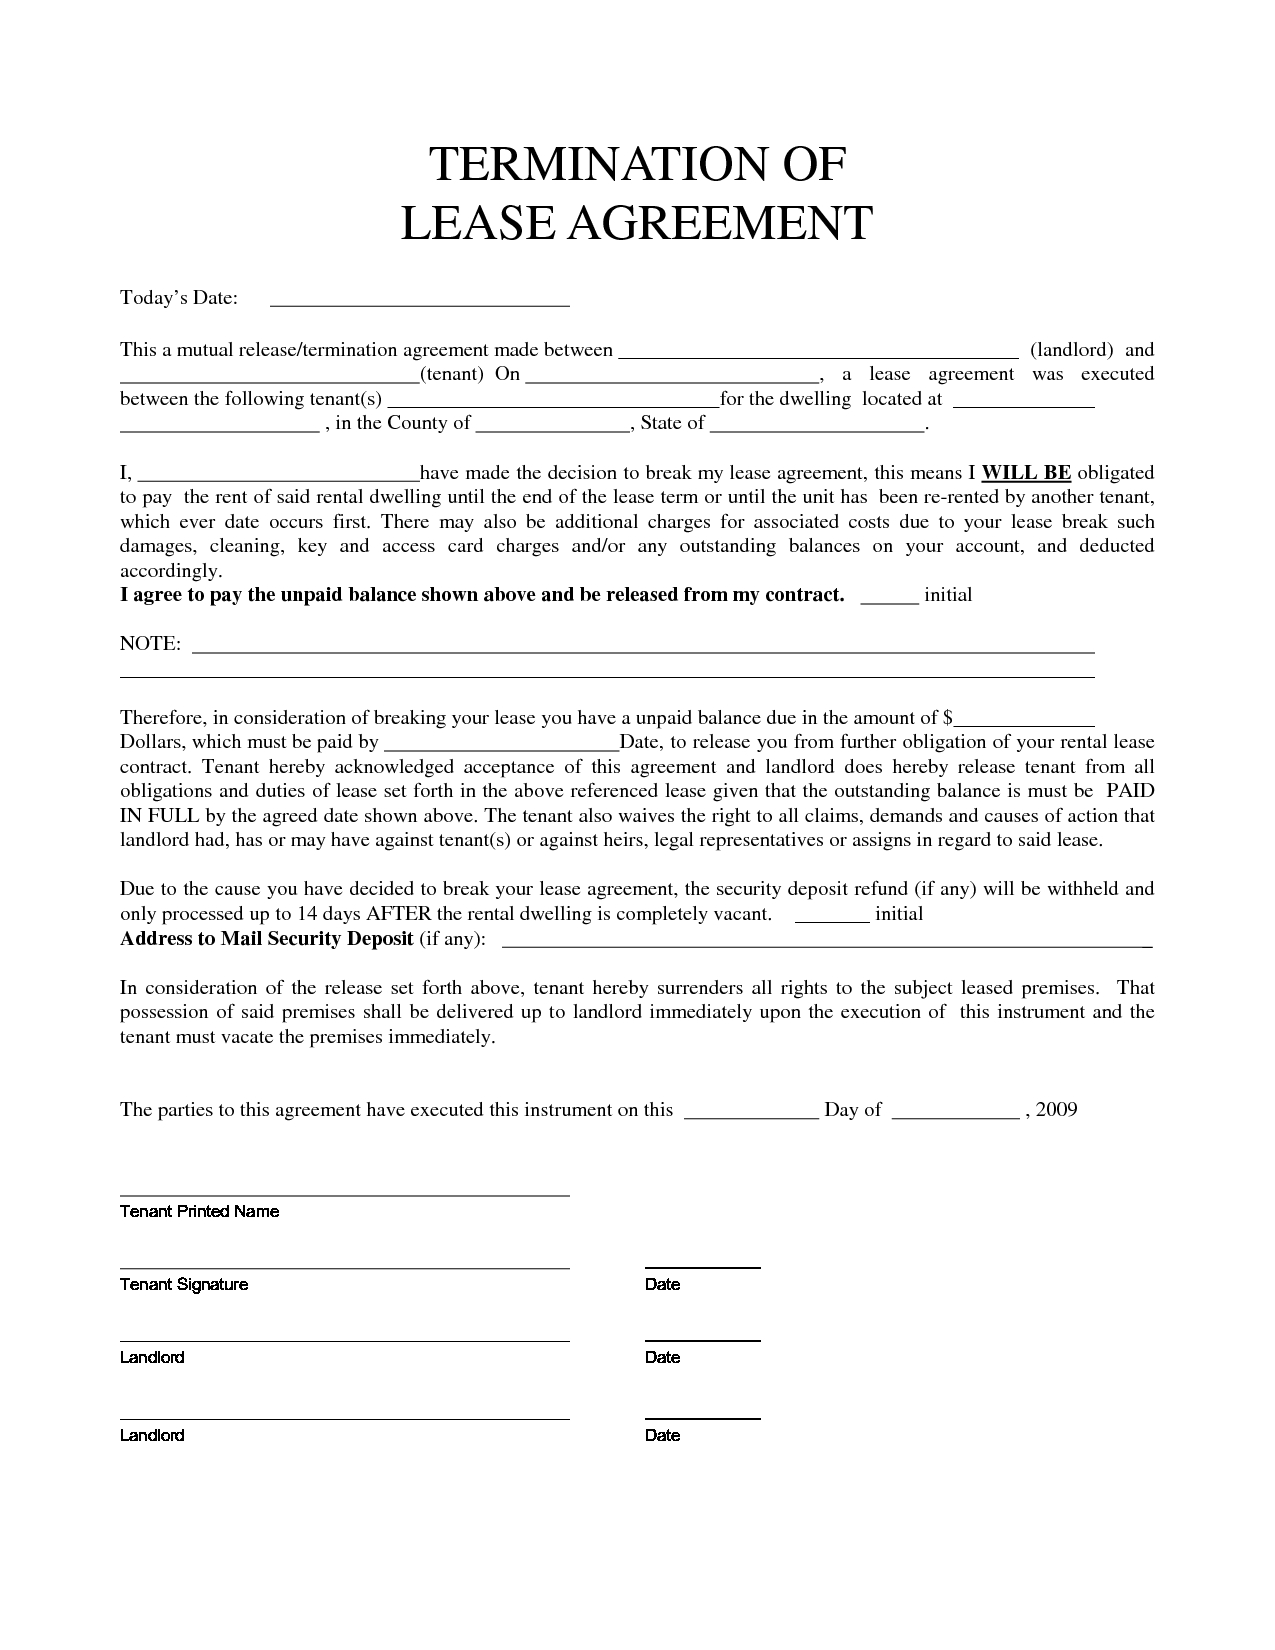 Lease Termination Letter to Tenant Template - Inspirational Early Lease Termination Letter Your Template